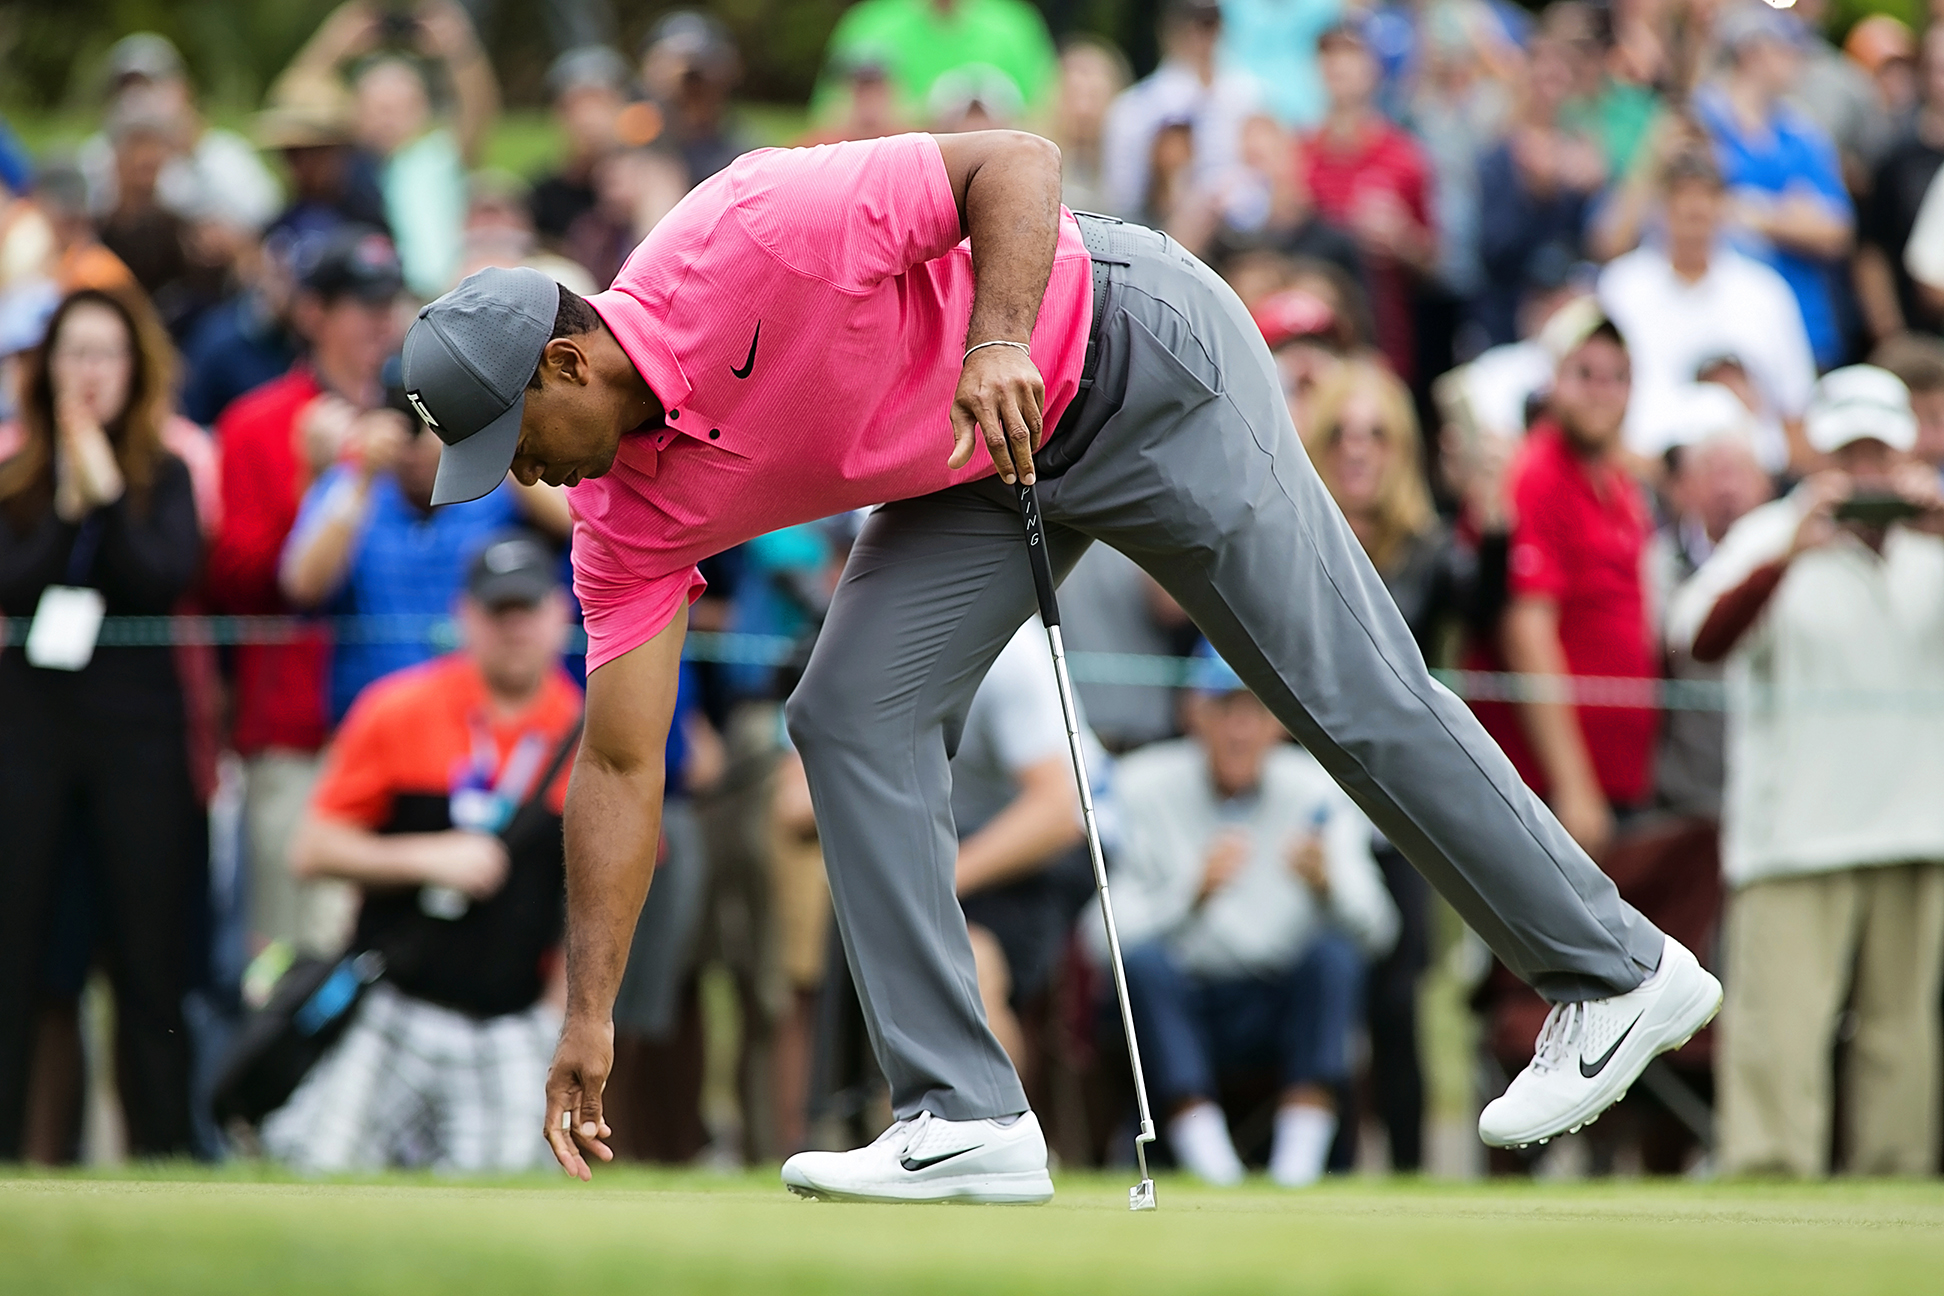 Tiger has one round to go and he's in the hunt./CARMEN MANDATO